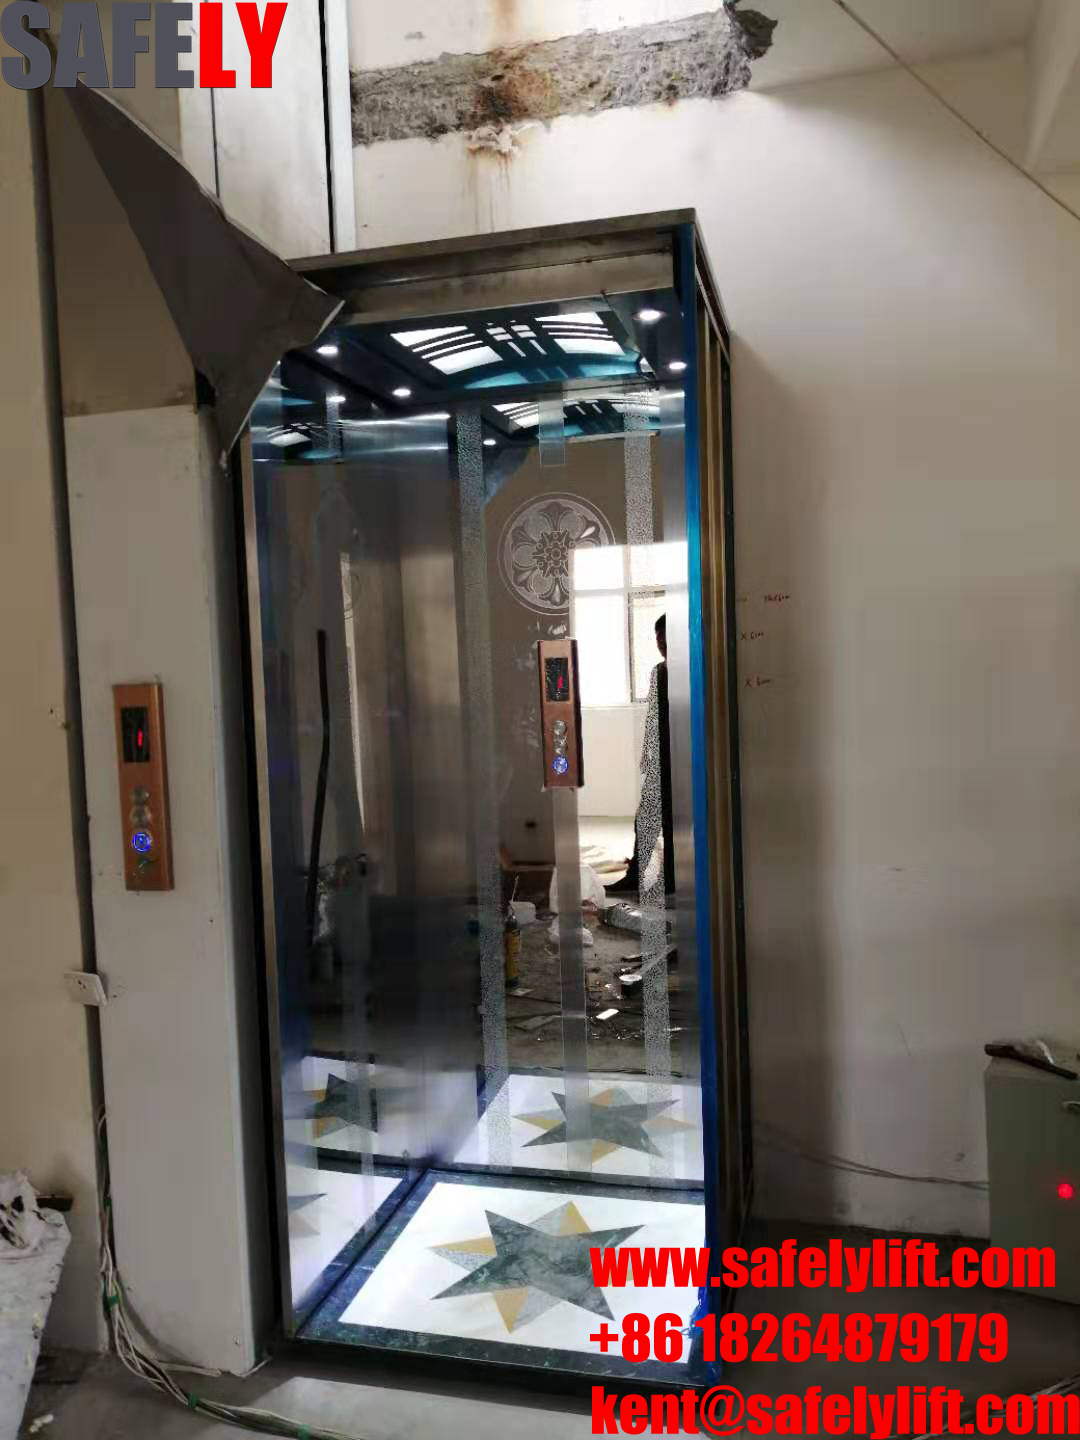 hydraulic home elevator from China Safely Lift